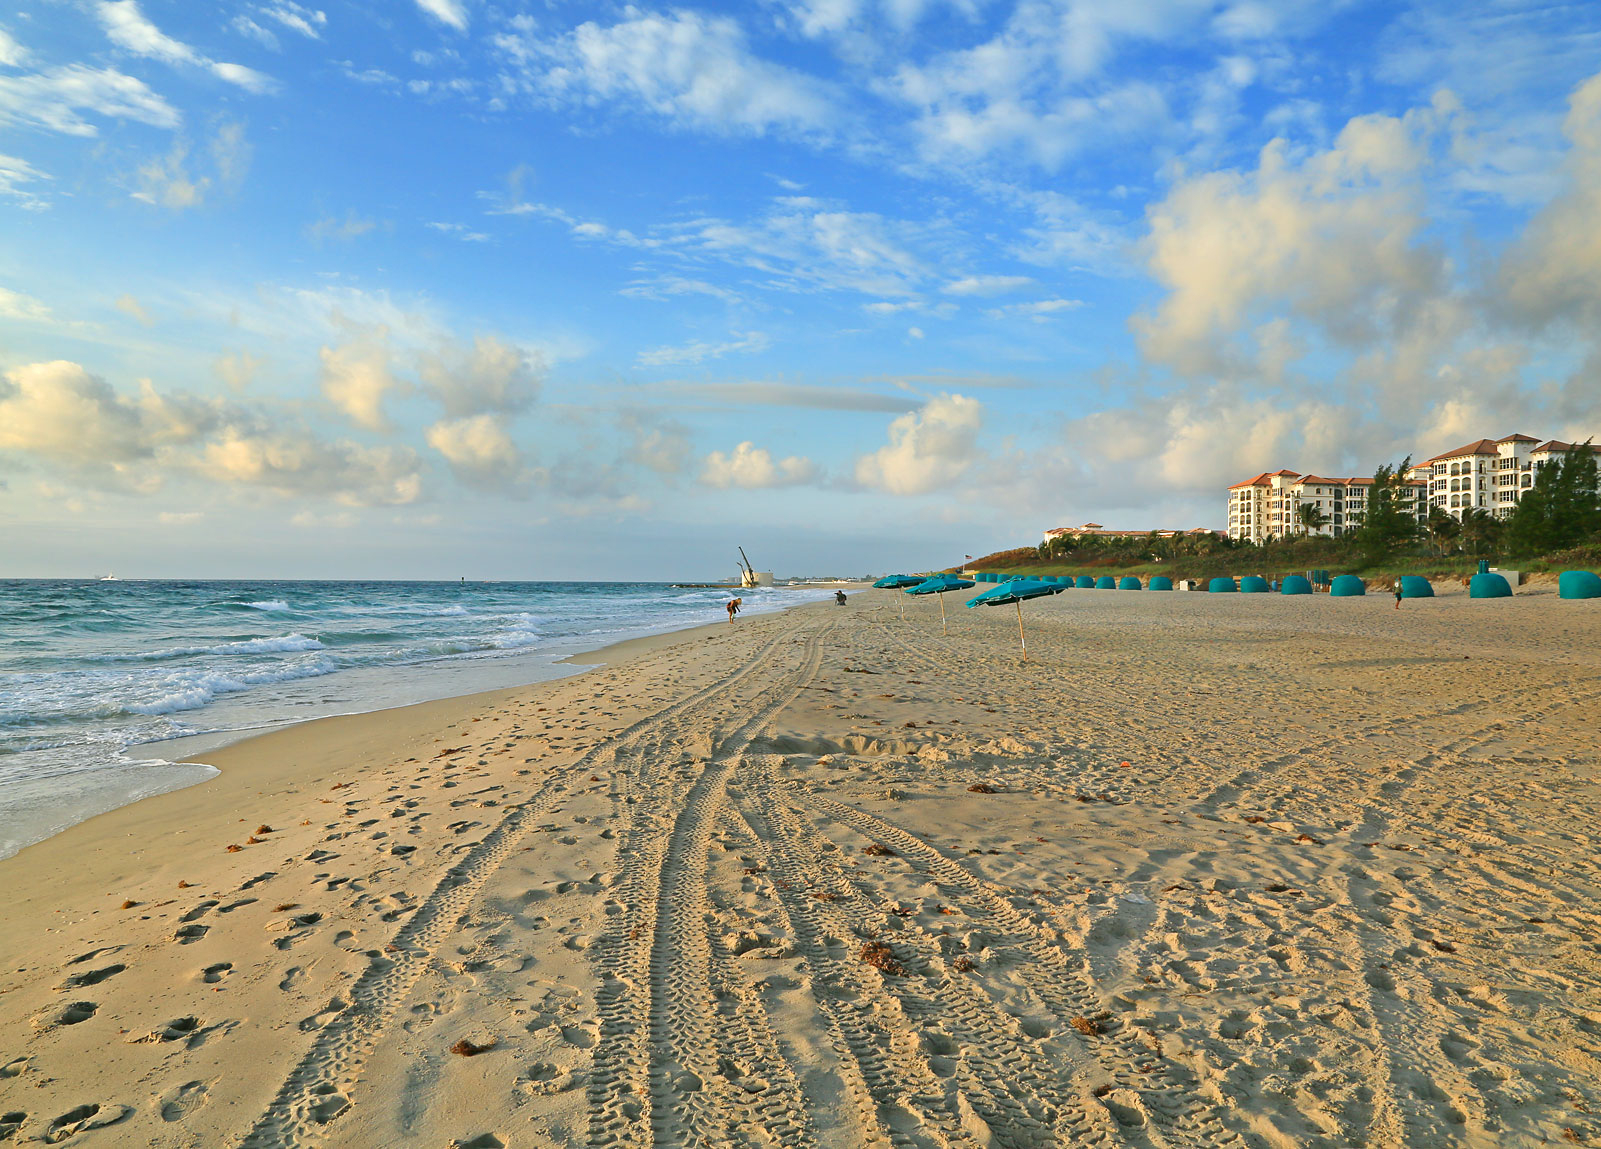 Singer Island - Located In South Florida The Town Of Palm Beach Shores - Singer Island Florida Map